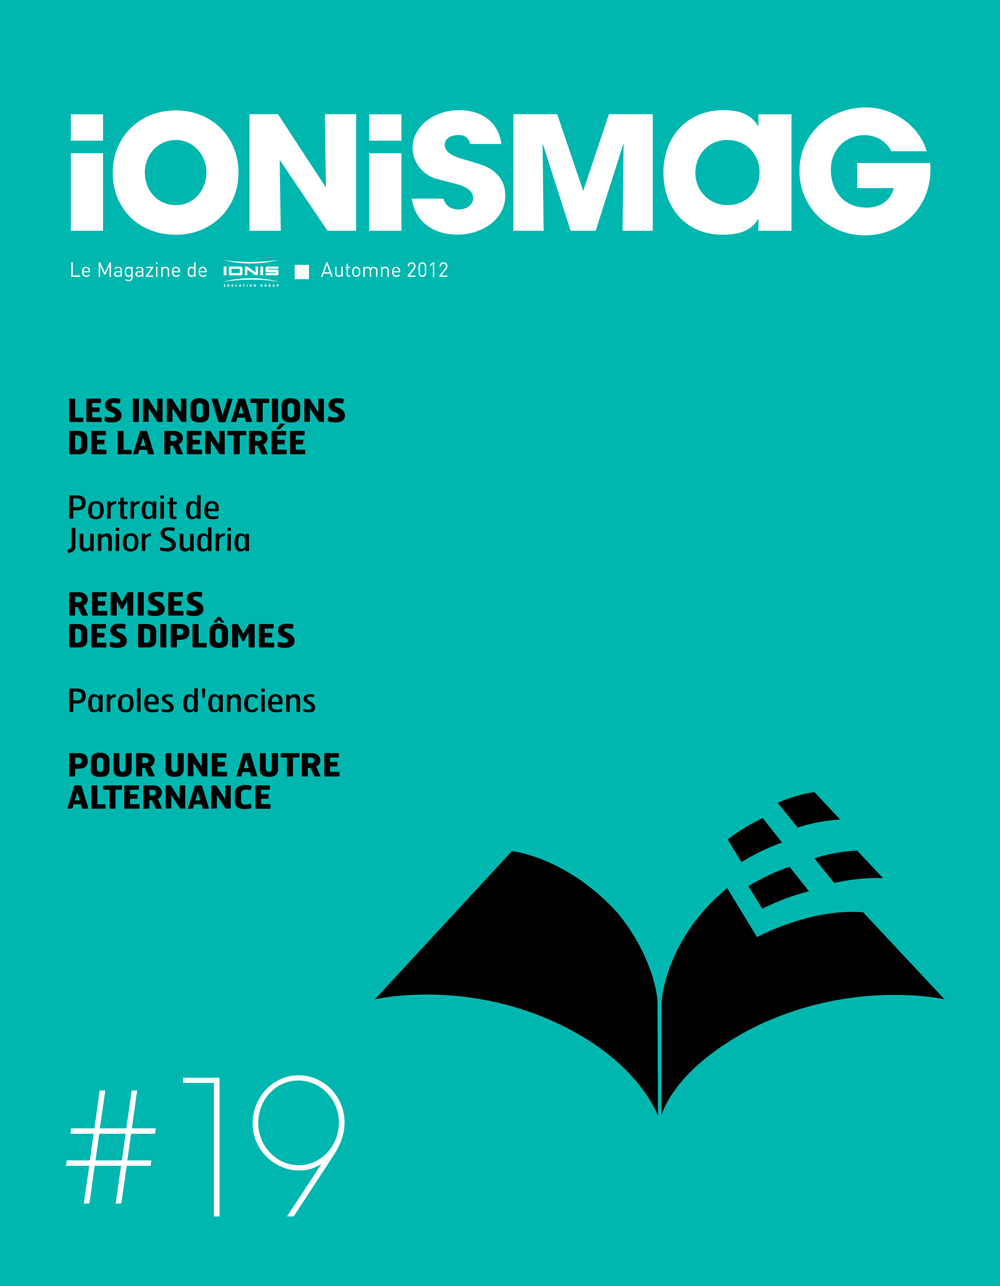 IONIS MAG 19